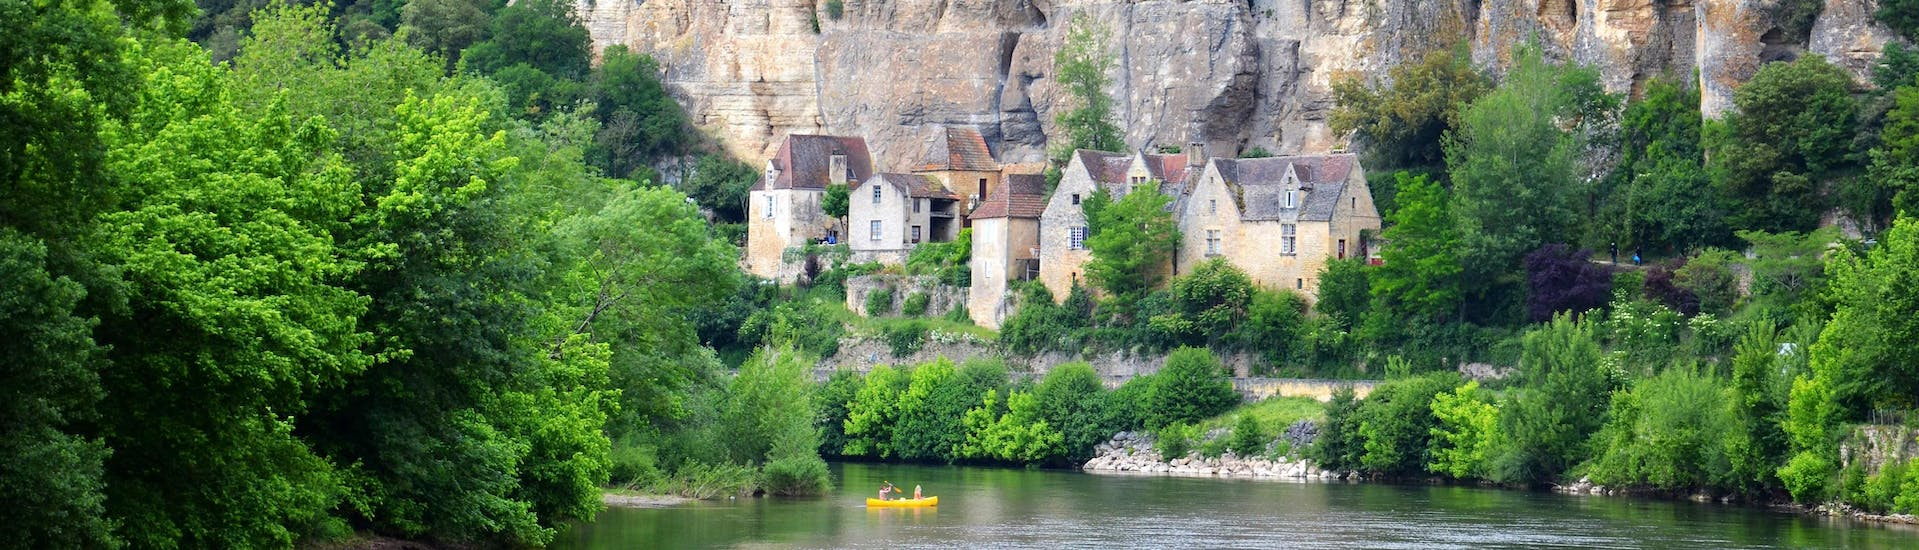 Canoe enthusiasts are paddling quietly on the Vézère river in the Dordogne in front of the troglodytic habitats of the town of Les Eyzies.